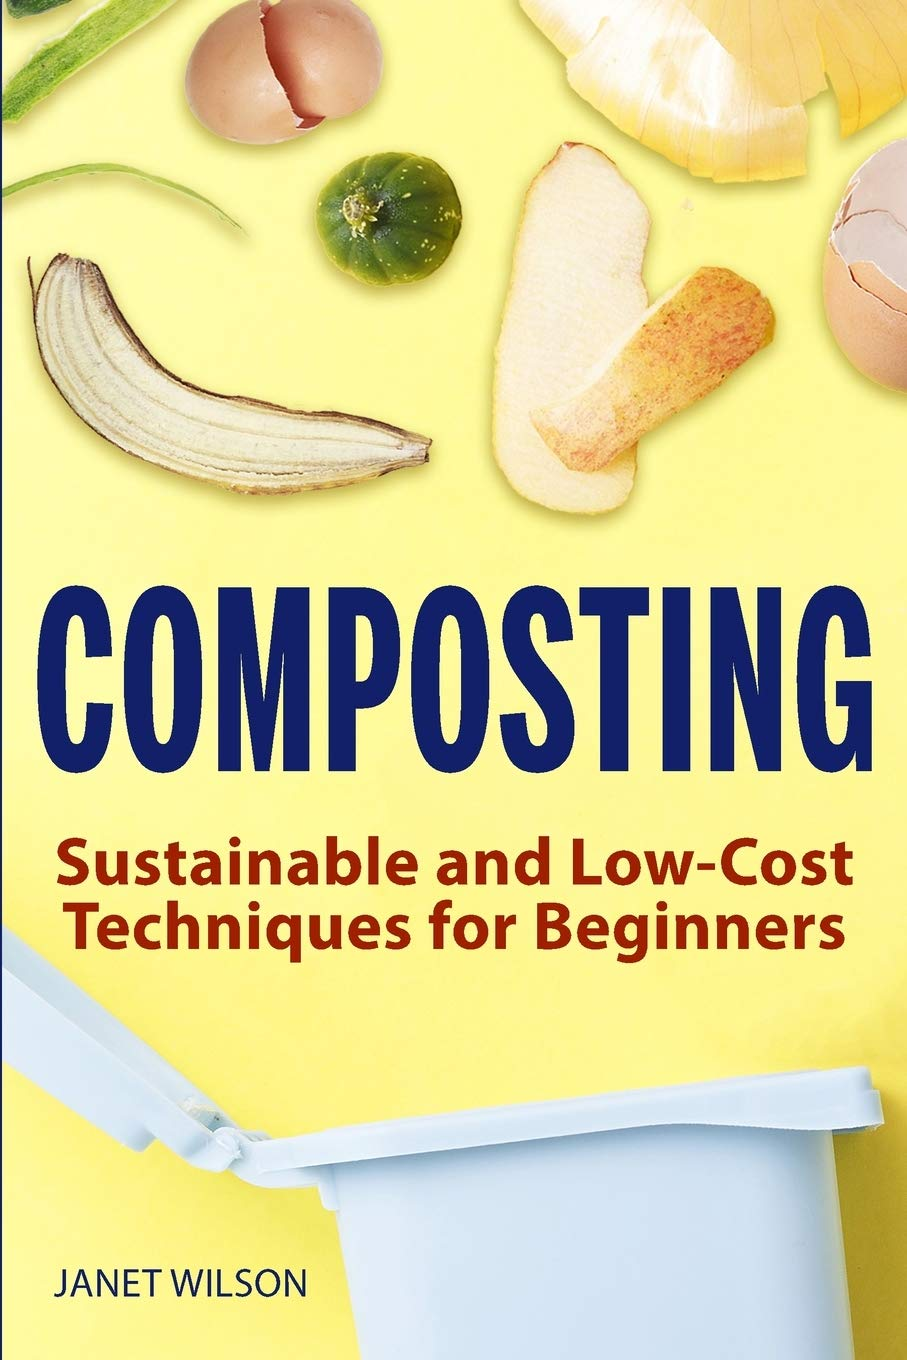 Download Composting: Sustainable And Low-Cost Techniques For Beginners 